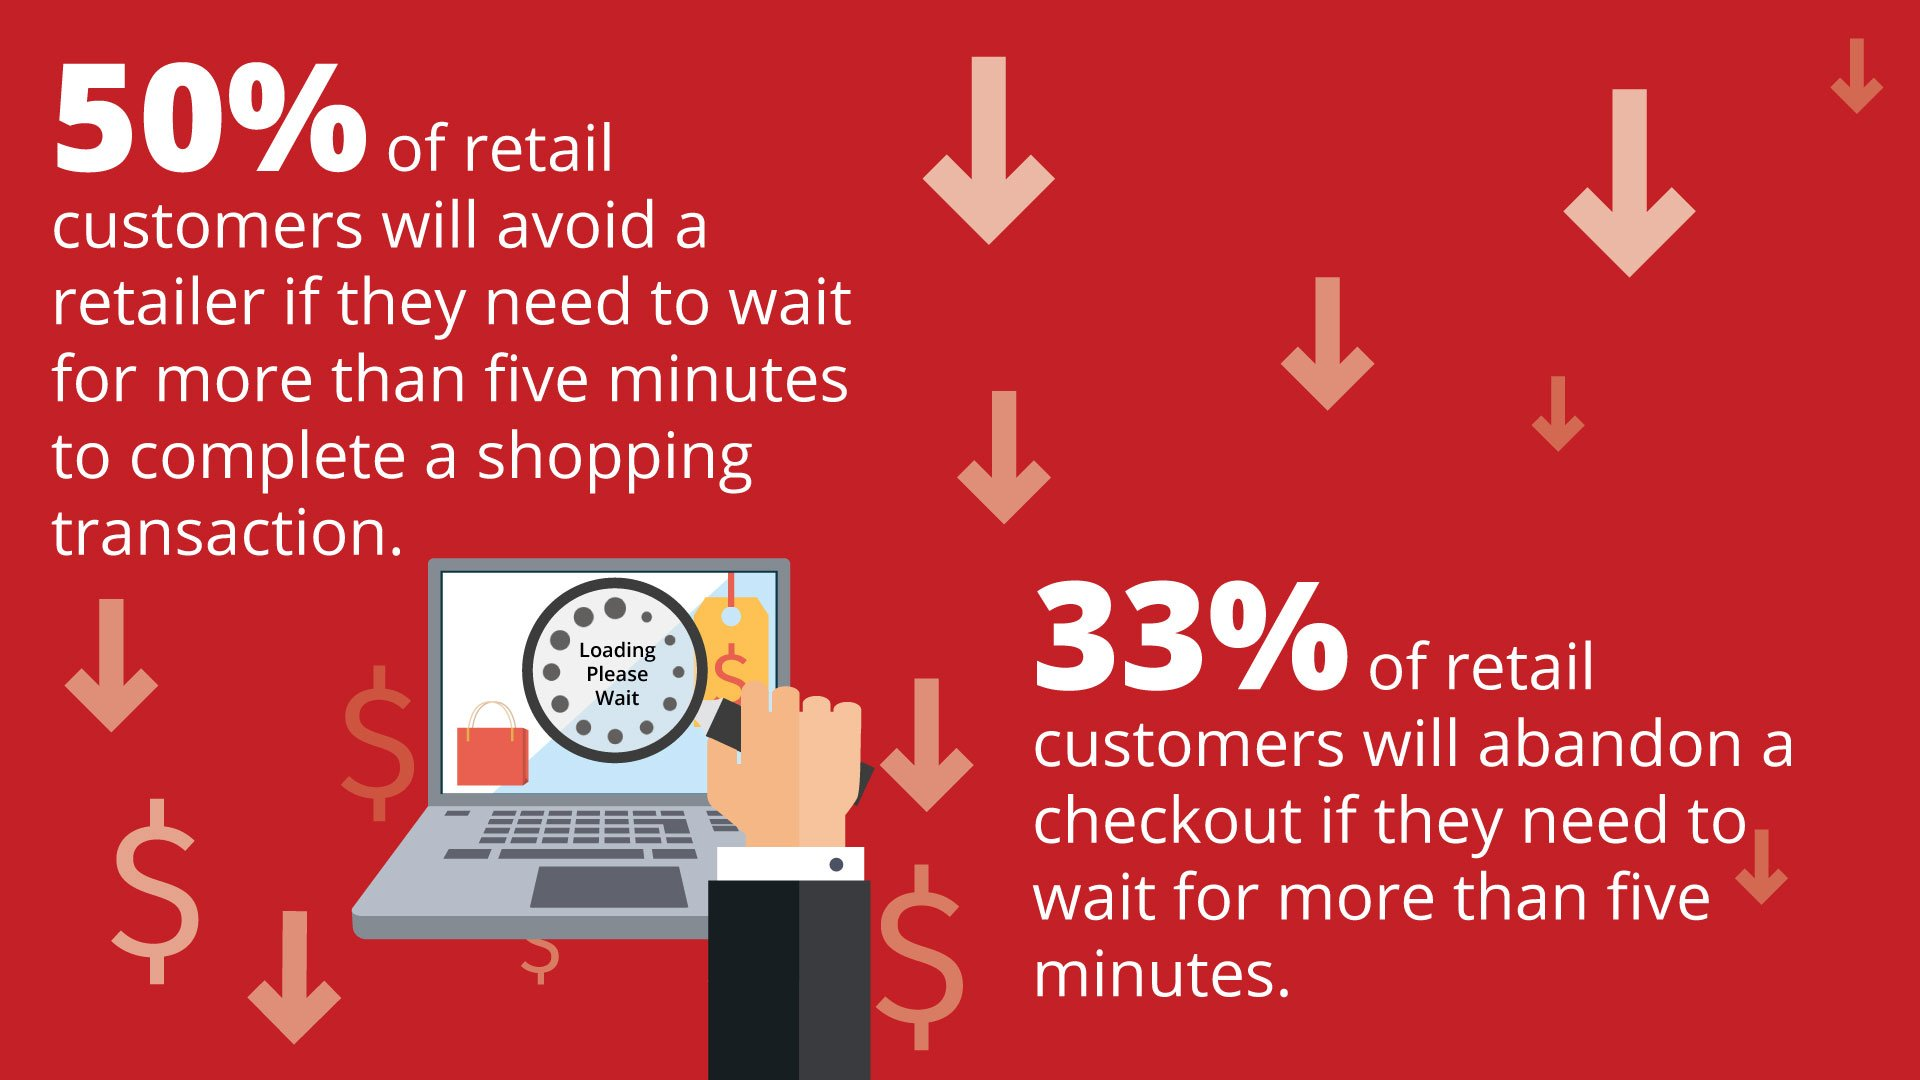 Retail Checkout Times and Customer Churn